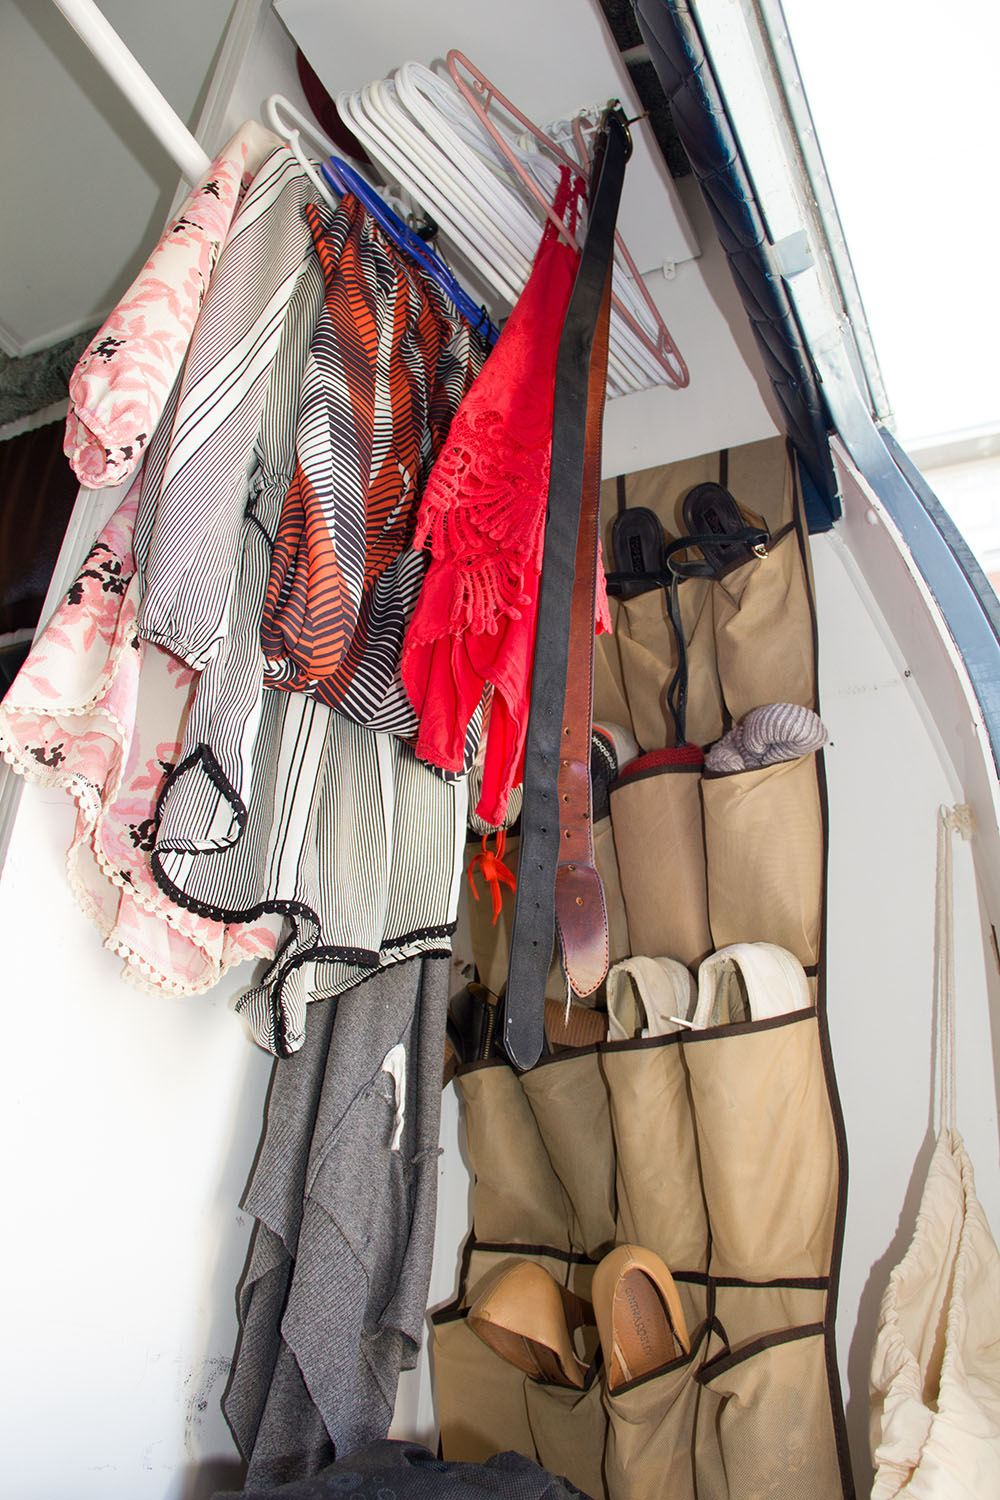 Emily Chambers has a small wardrobe and shoe rack in her van (Jenni Sheppard/Daily Hive)